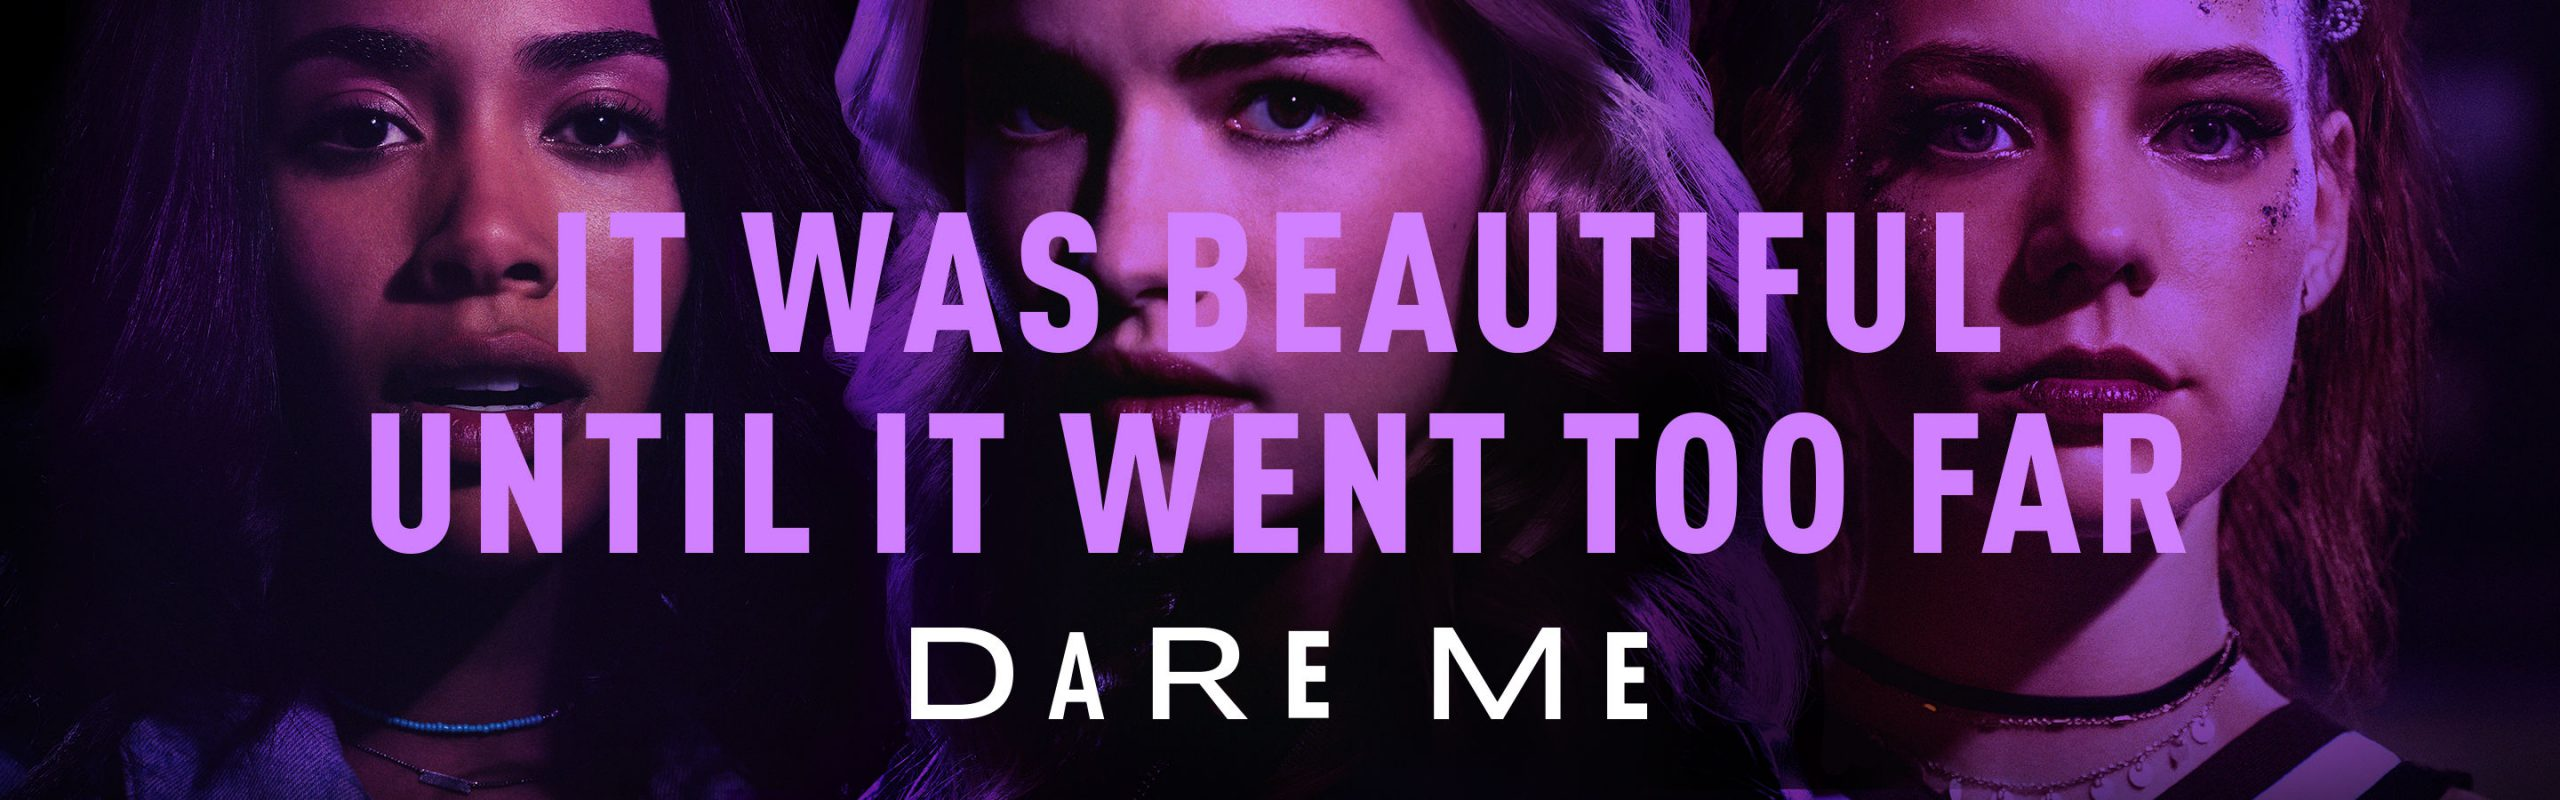 "A Cheerful Choice: Point Classics track placed in new American drama series ""Dare Me"""